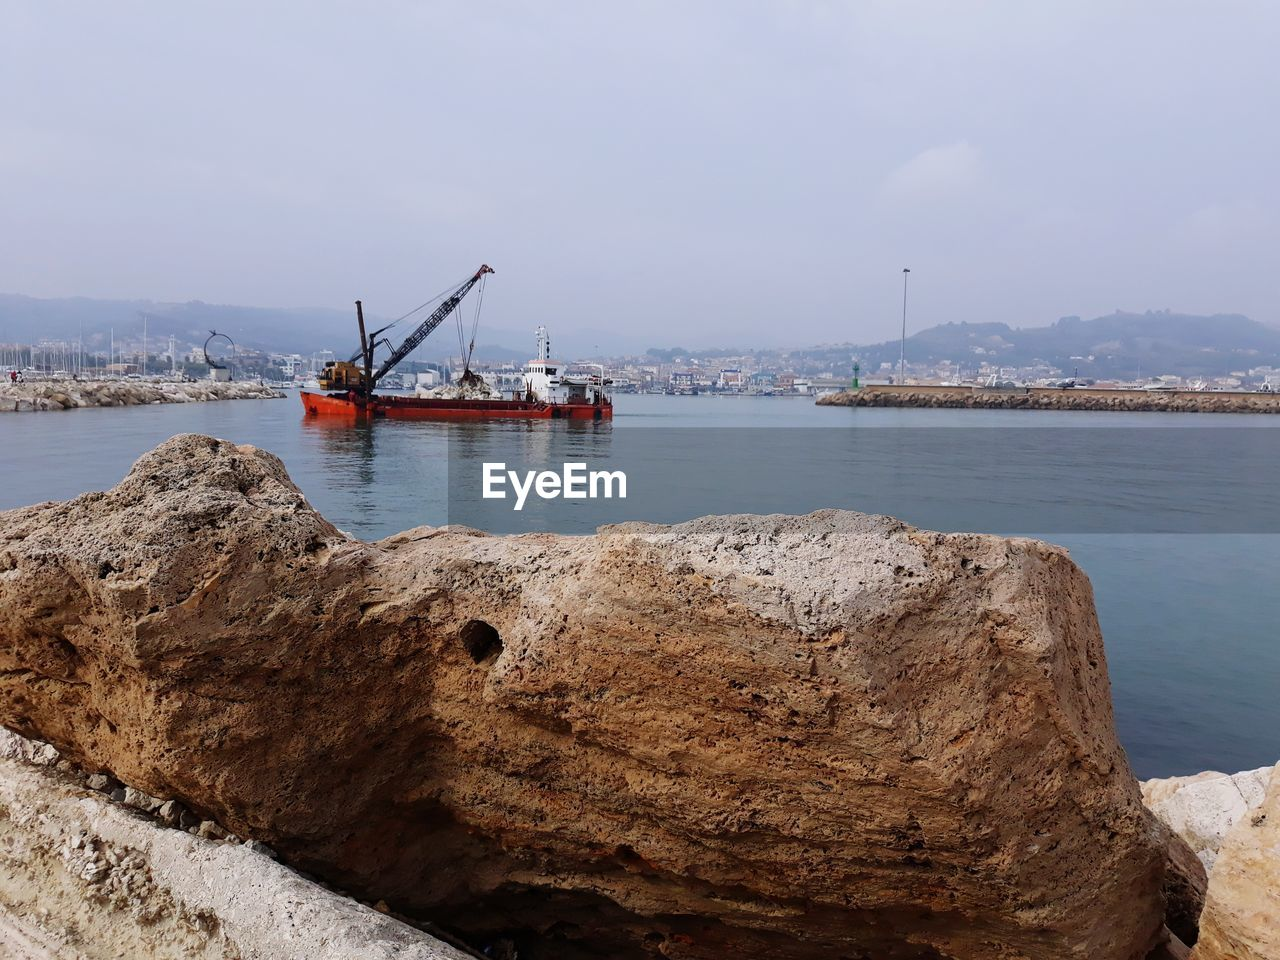 water, transportation, sea, rock, nautical vessel, sky, rock - object, solid, mode of transportation, nature, no people, day, tranquility, outdoors, harbor, tranquil scene, beauty in nature, industry, pier, construction equipment